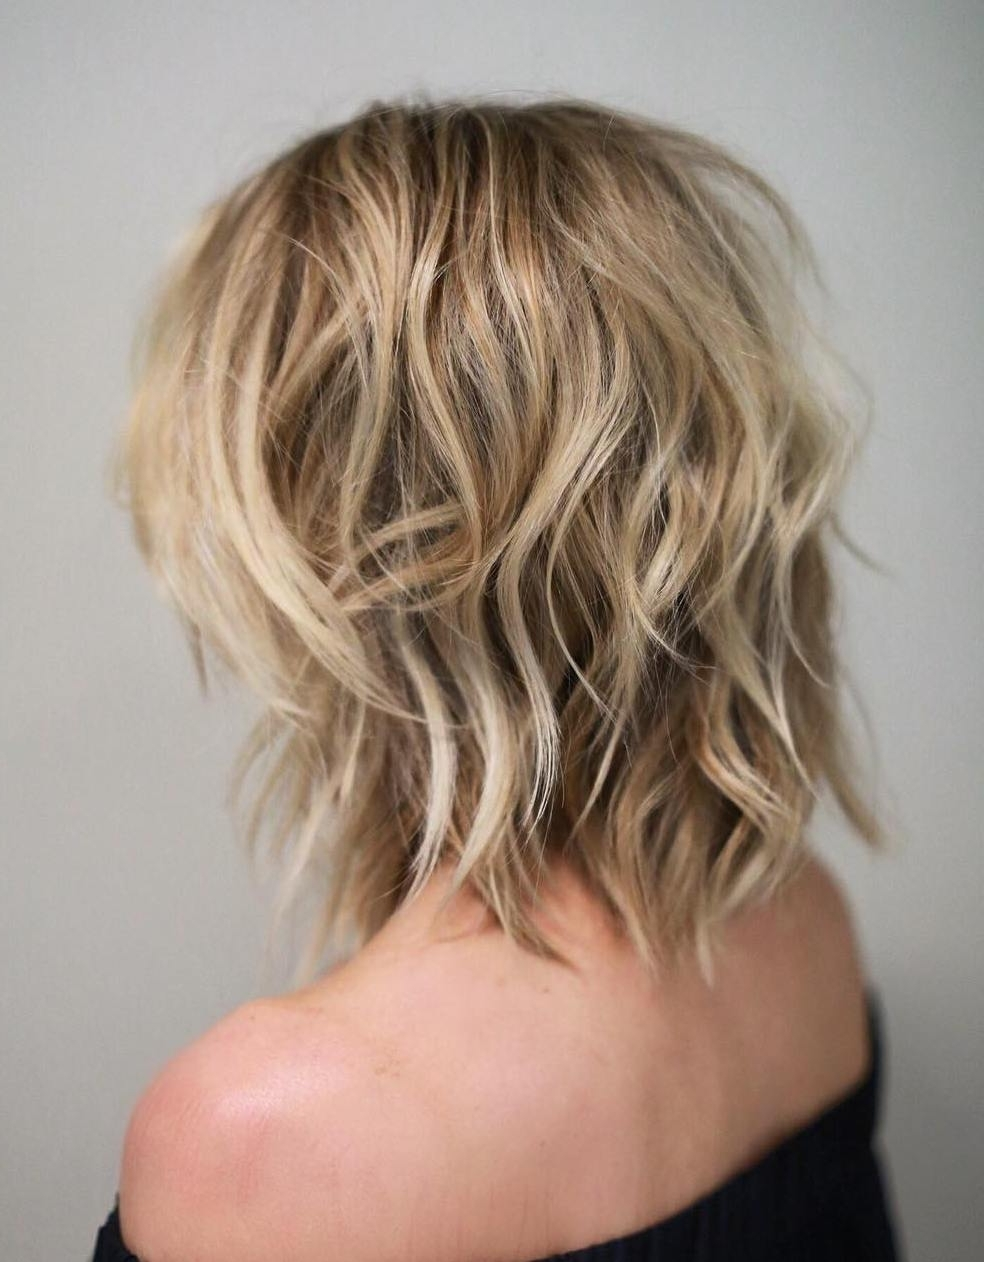 Shag Haircuts And Hairstyles In 2018 — Therighthairstyles Pertaining To Most Popular Shaggy Layered Hairstyles For Long Hair (View 11 of 15)